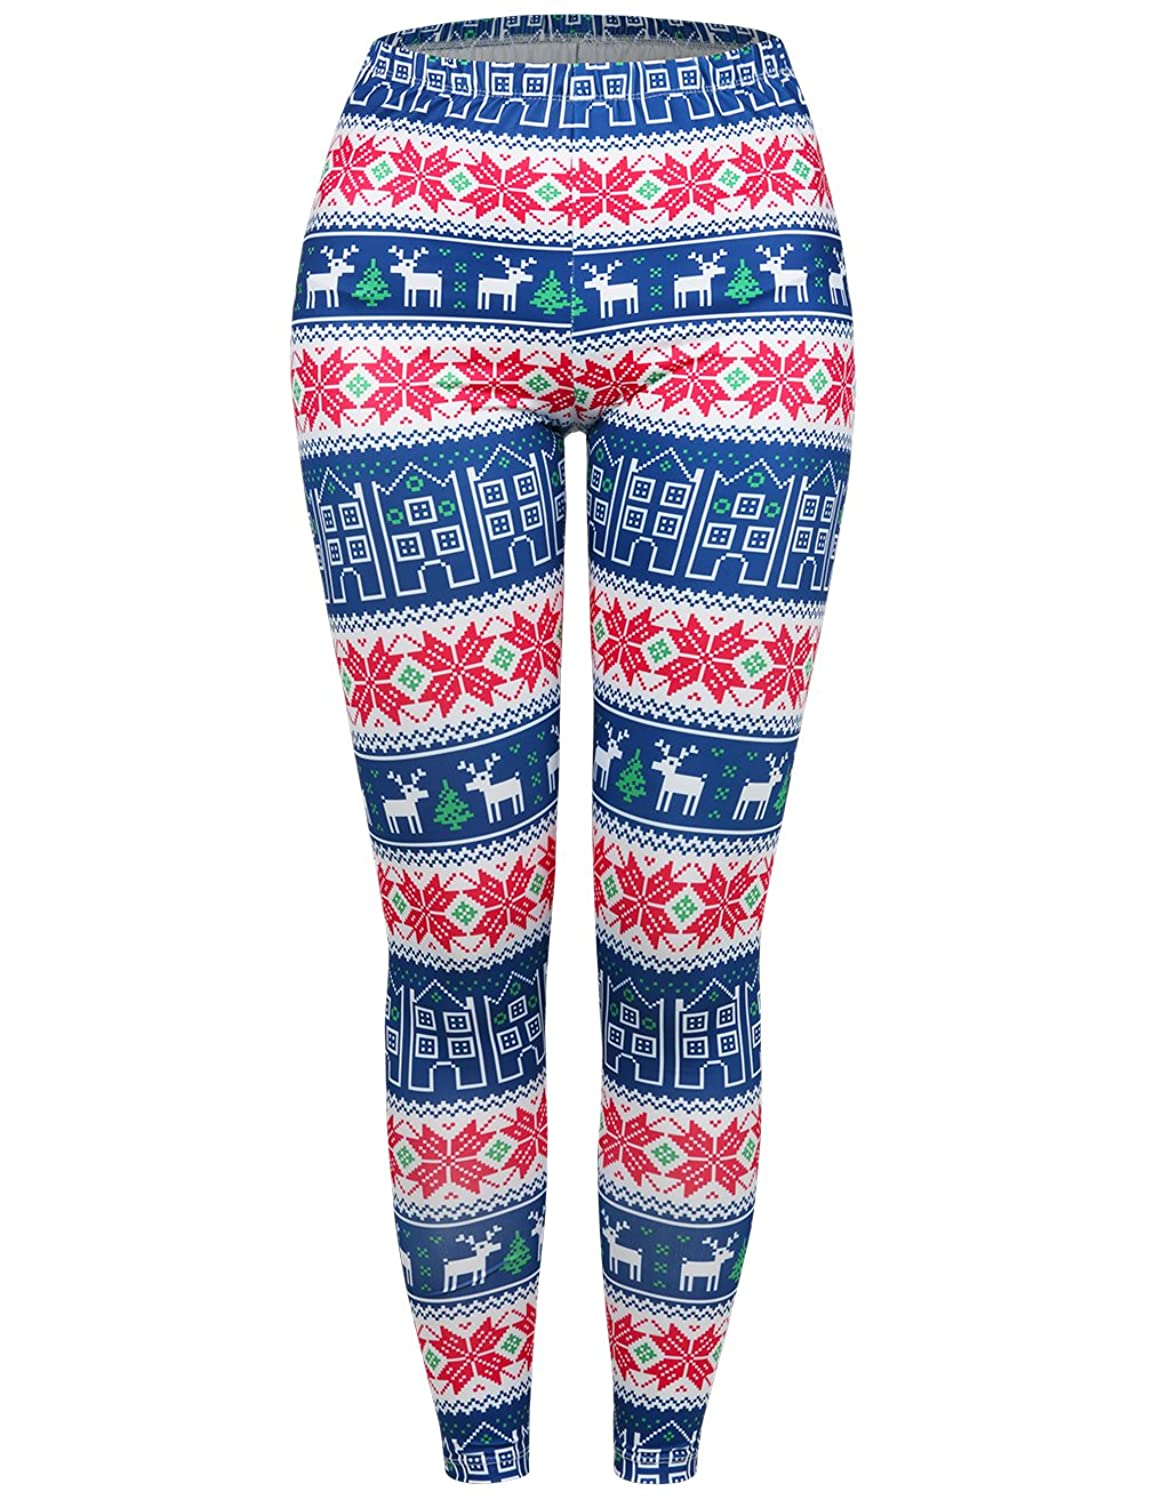 sunglory womens christmas leggings snowflake stocking pants stretchy tights